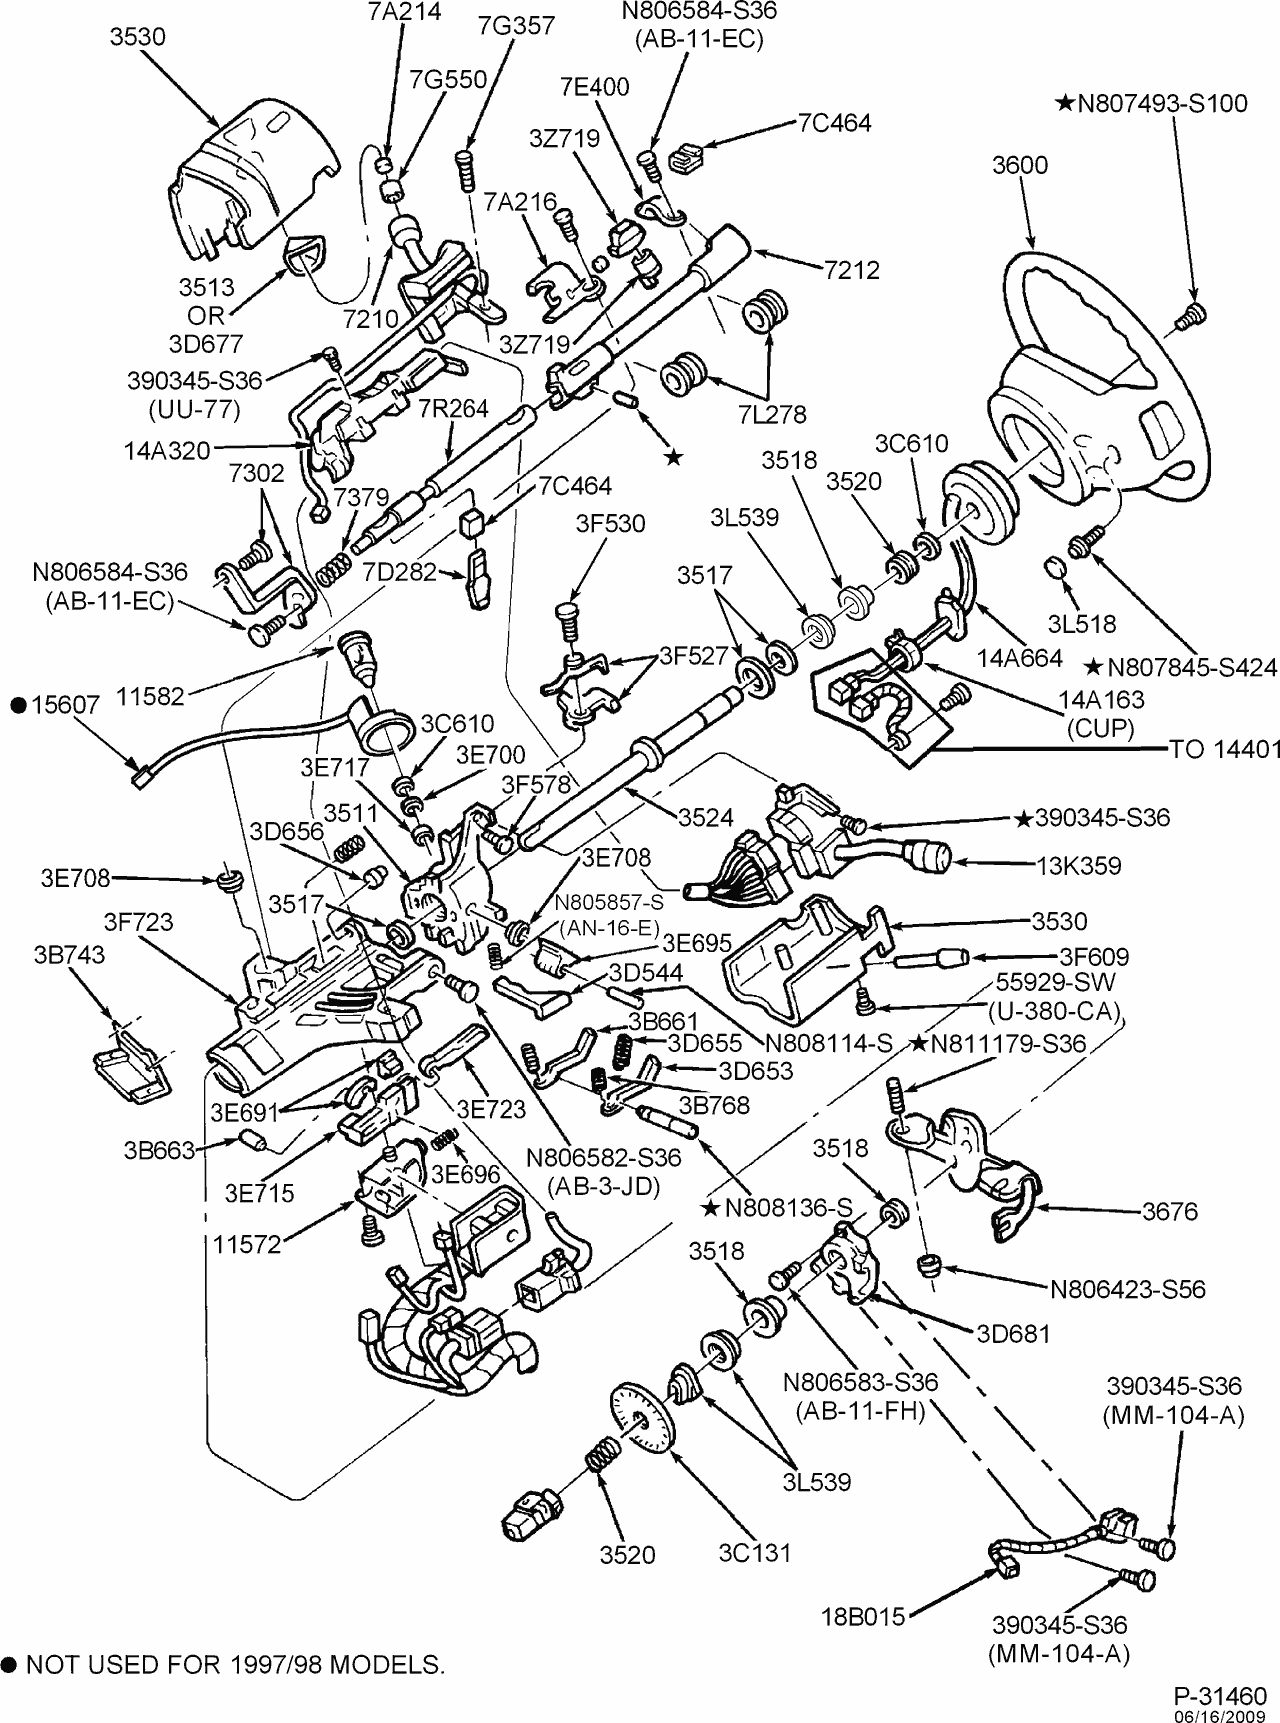 chevy steering column ignition switch wiring diagram exploded view for the 1997 ford f250 tilt steering 97 chevy ignition switch wiring diagram #8